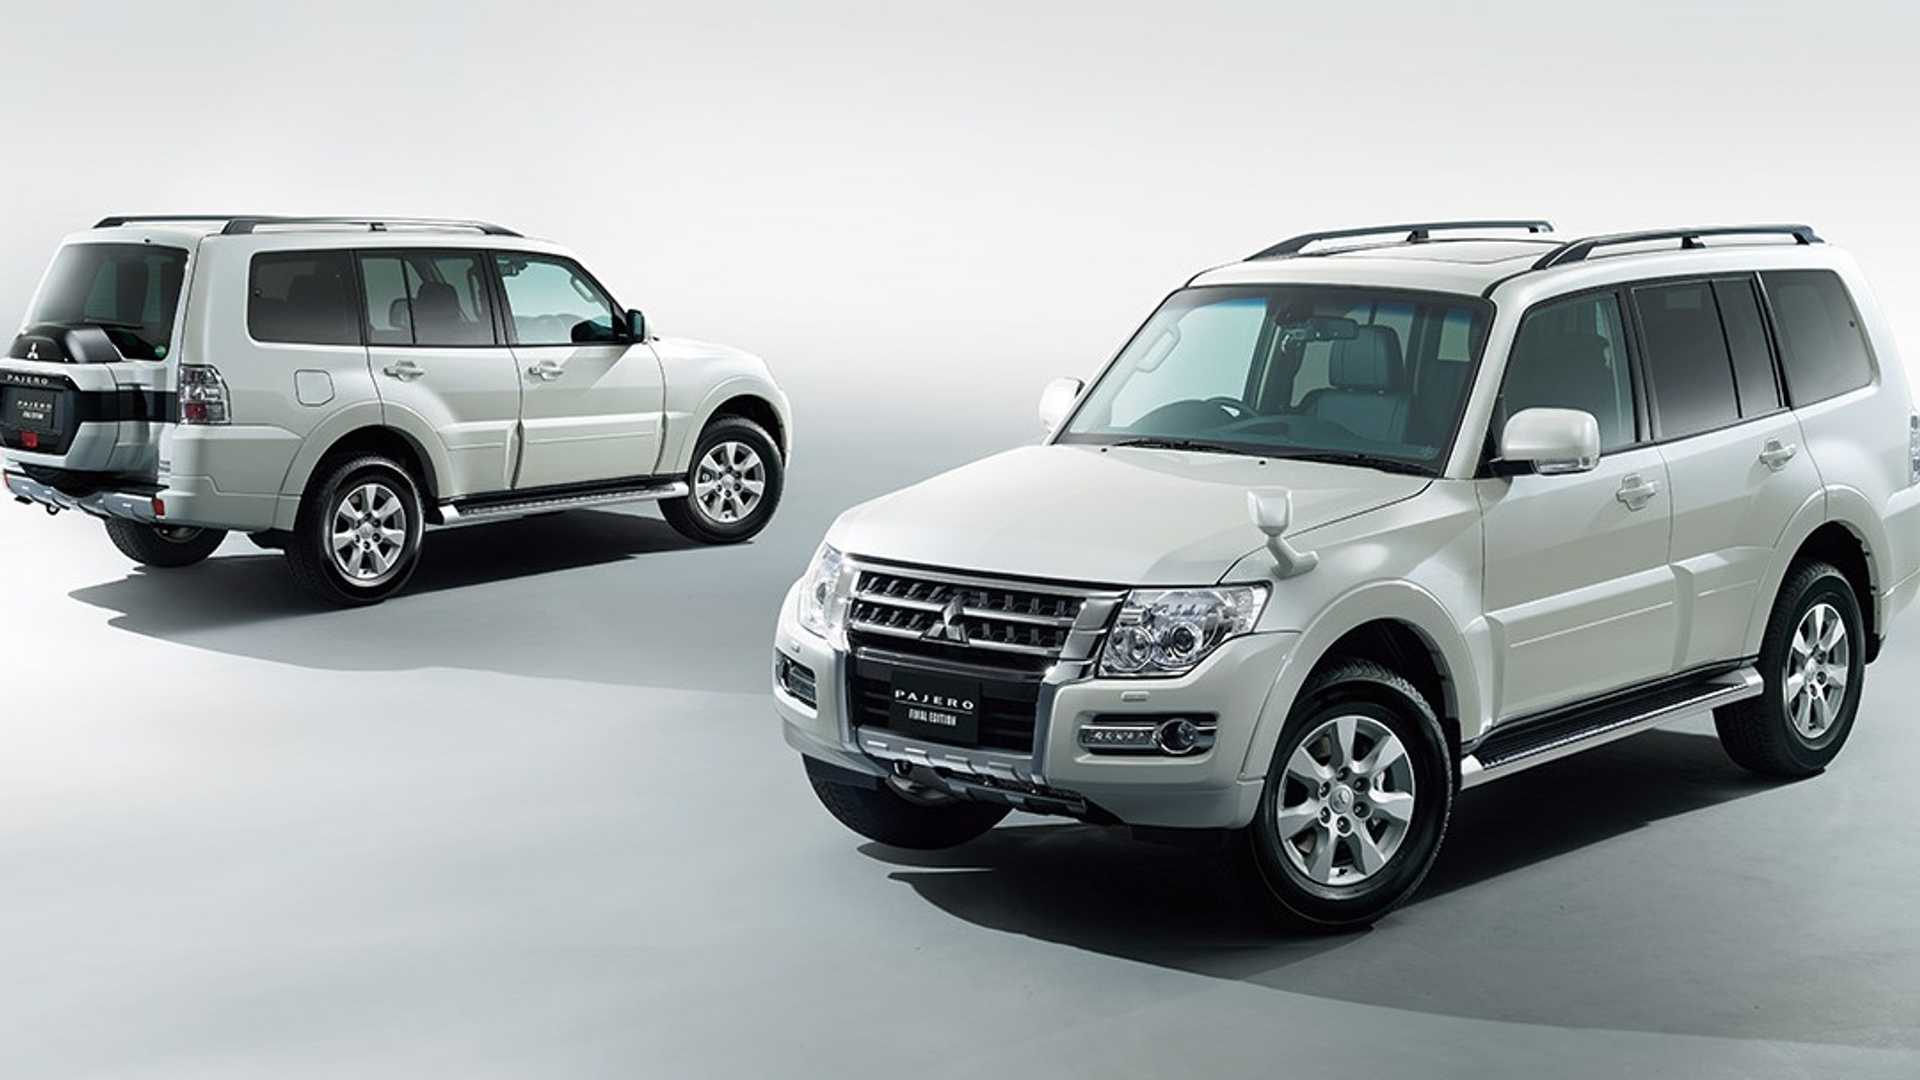 Mitsubishi Pajero Final Edition Revealed For Japan, But